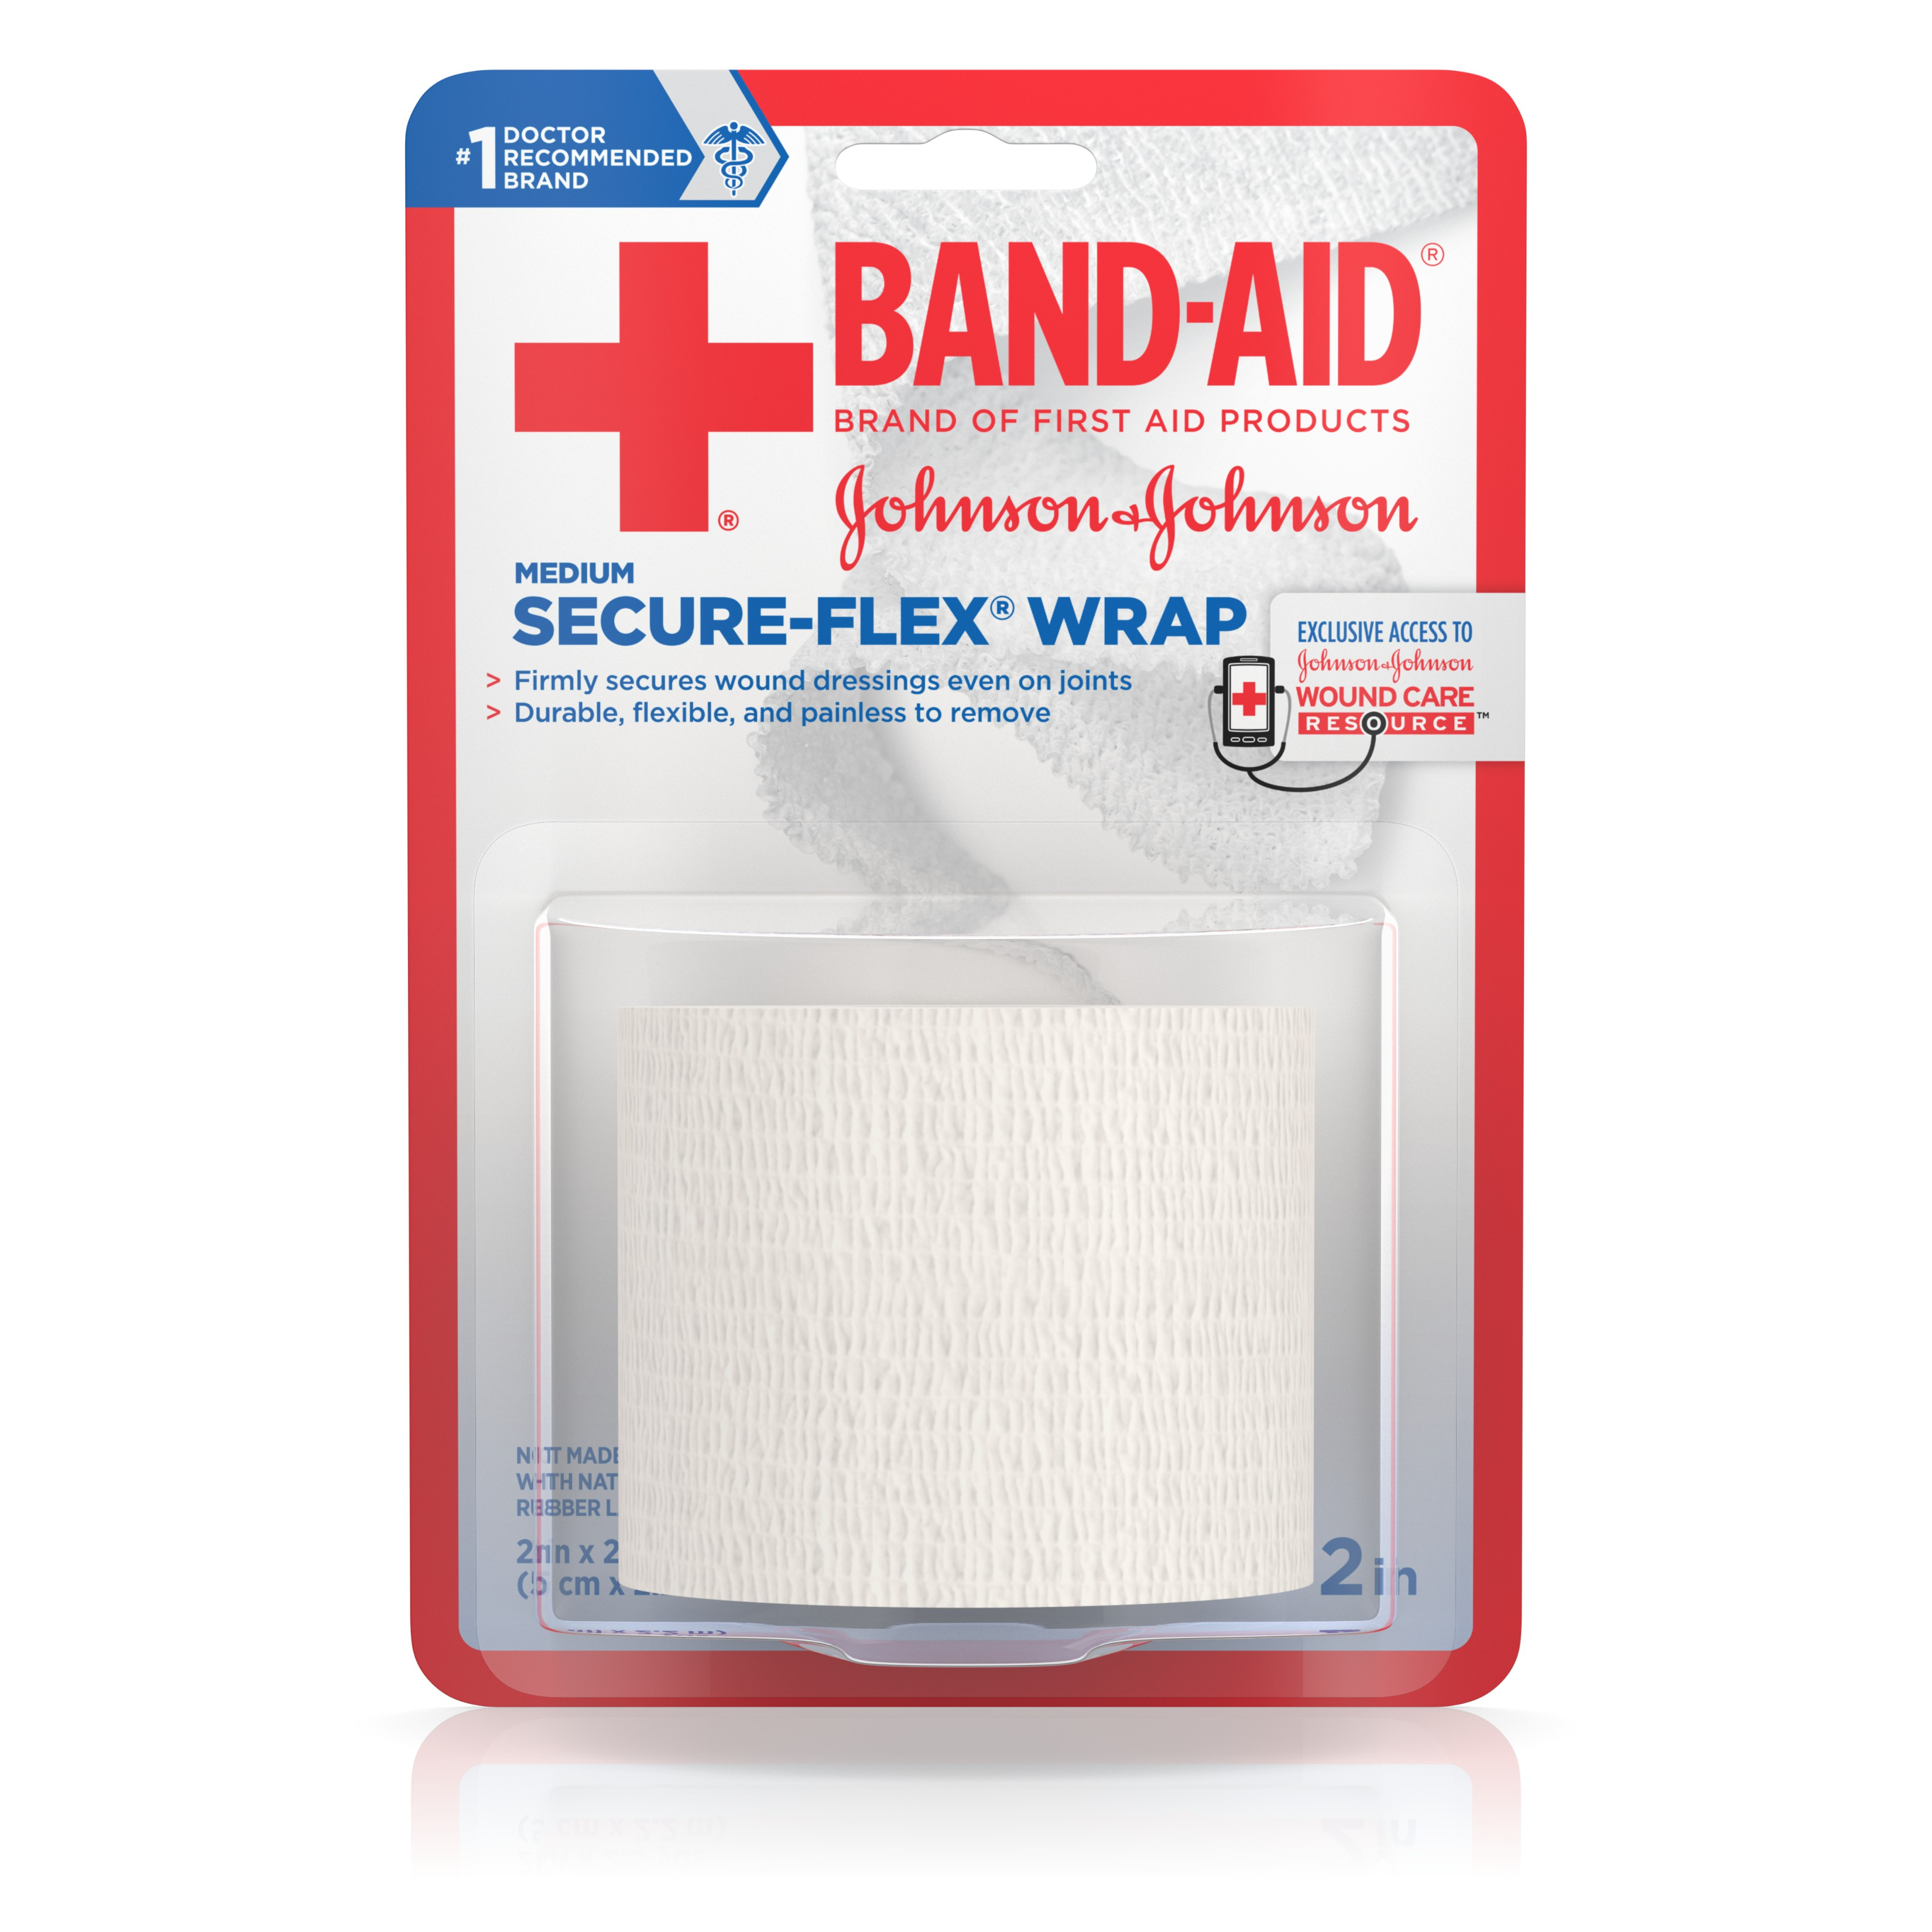 BAND-AID Brand of First Aid Products SECURE-FLEX Minor Wound Care Wrap, 2 Inches by 2.5 Yards by Johnson & Johnson